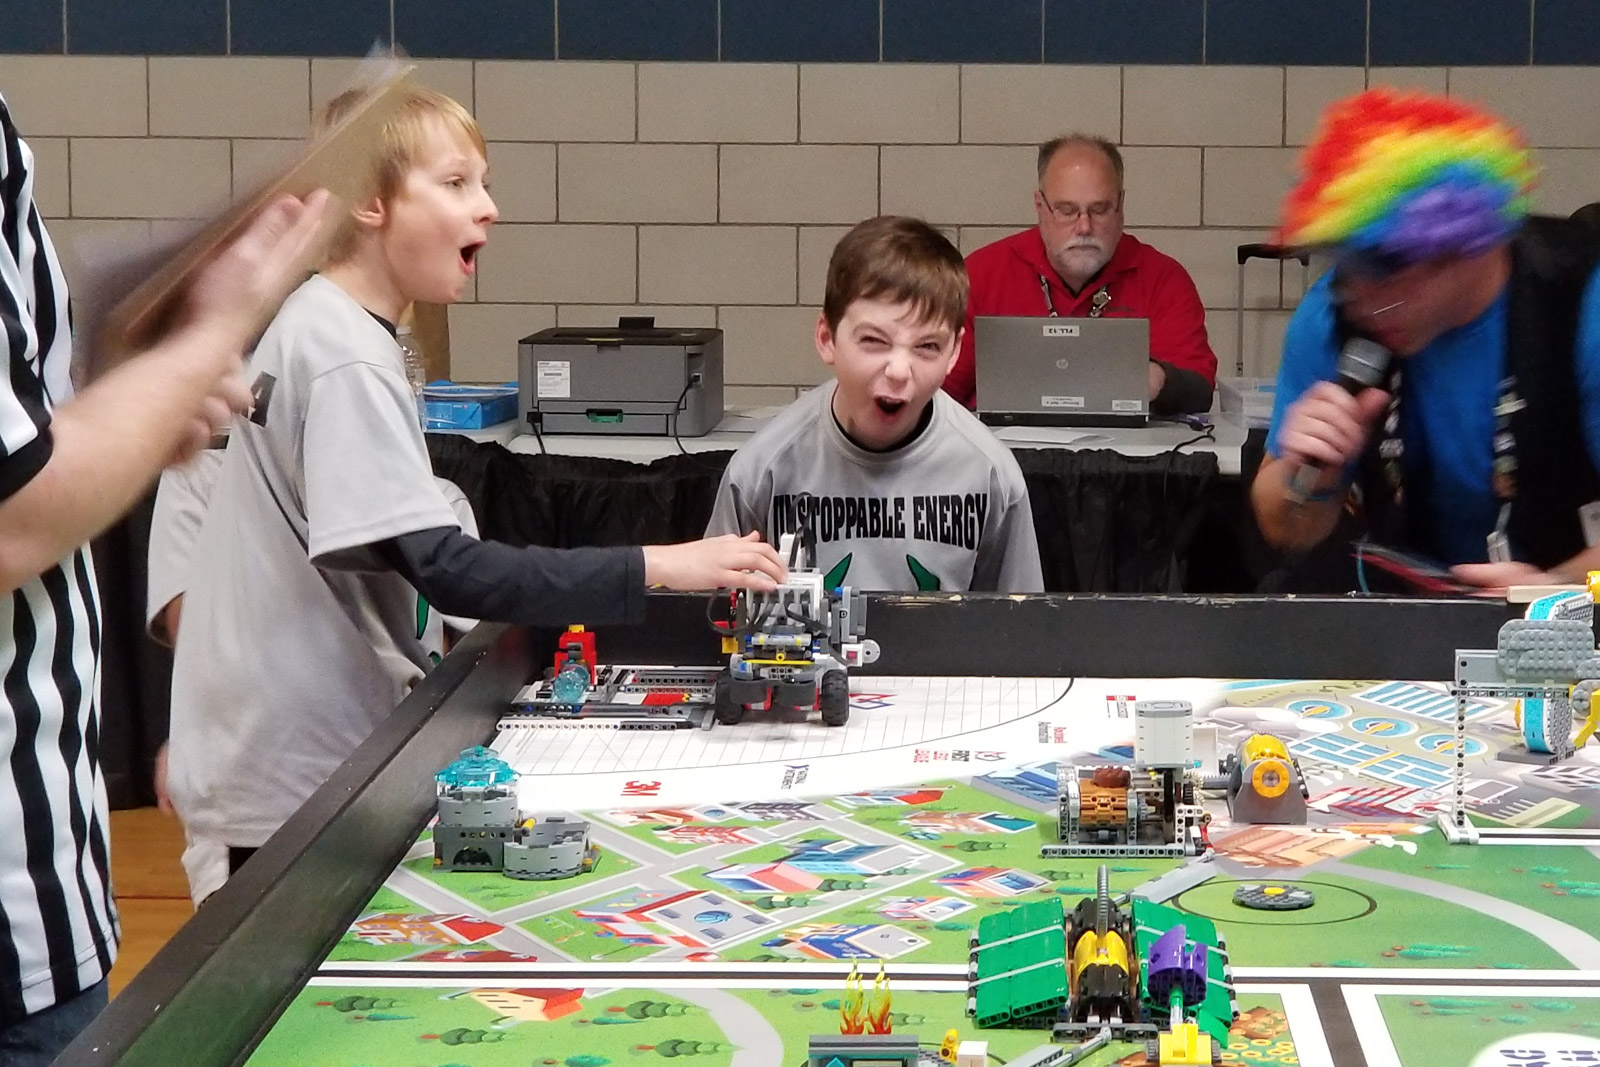 2018 Lego Robotics Competition - Team Unstoppable Energy-10